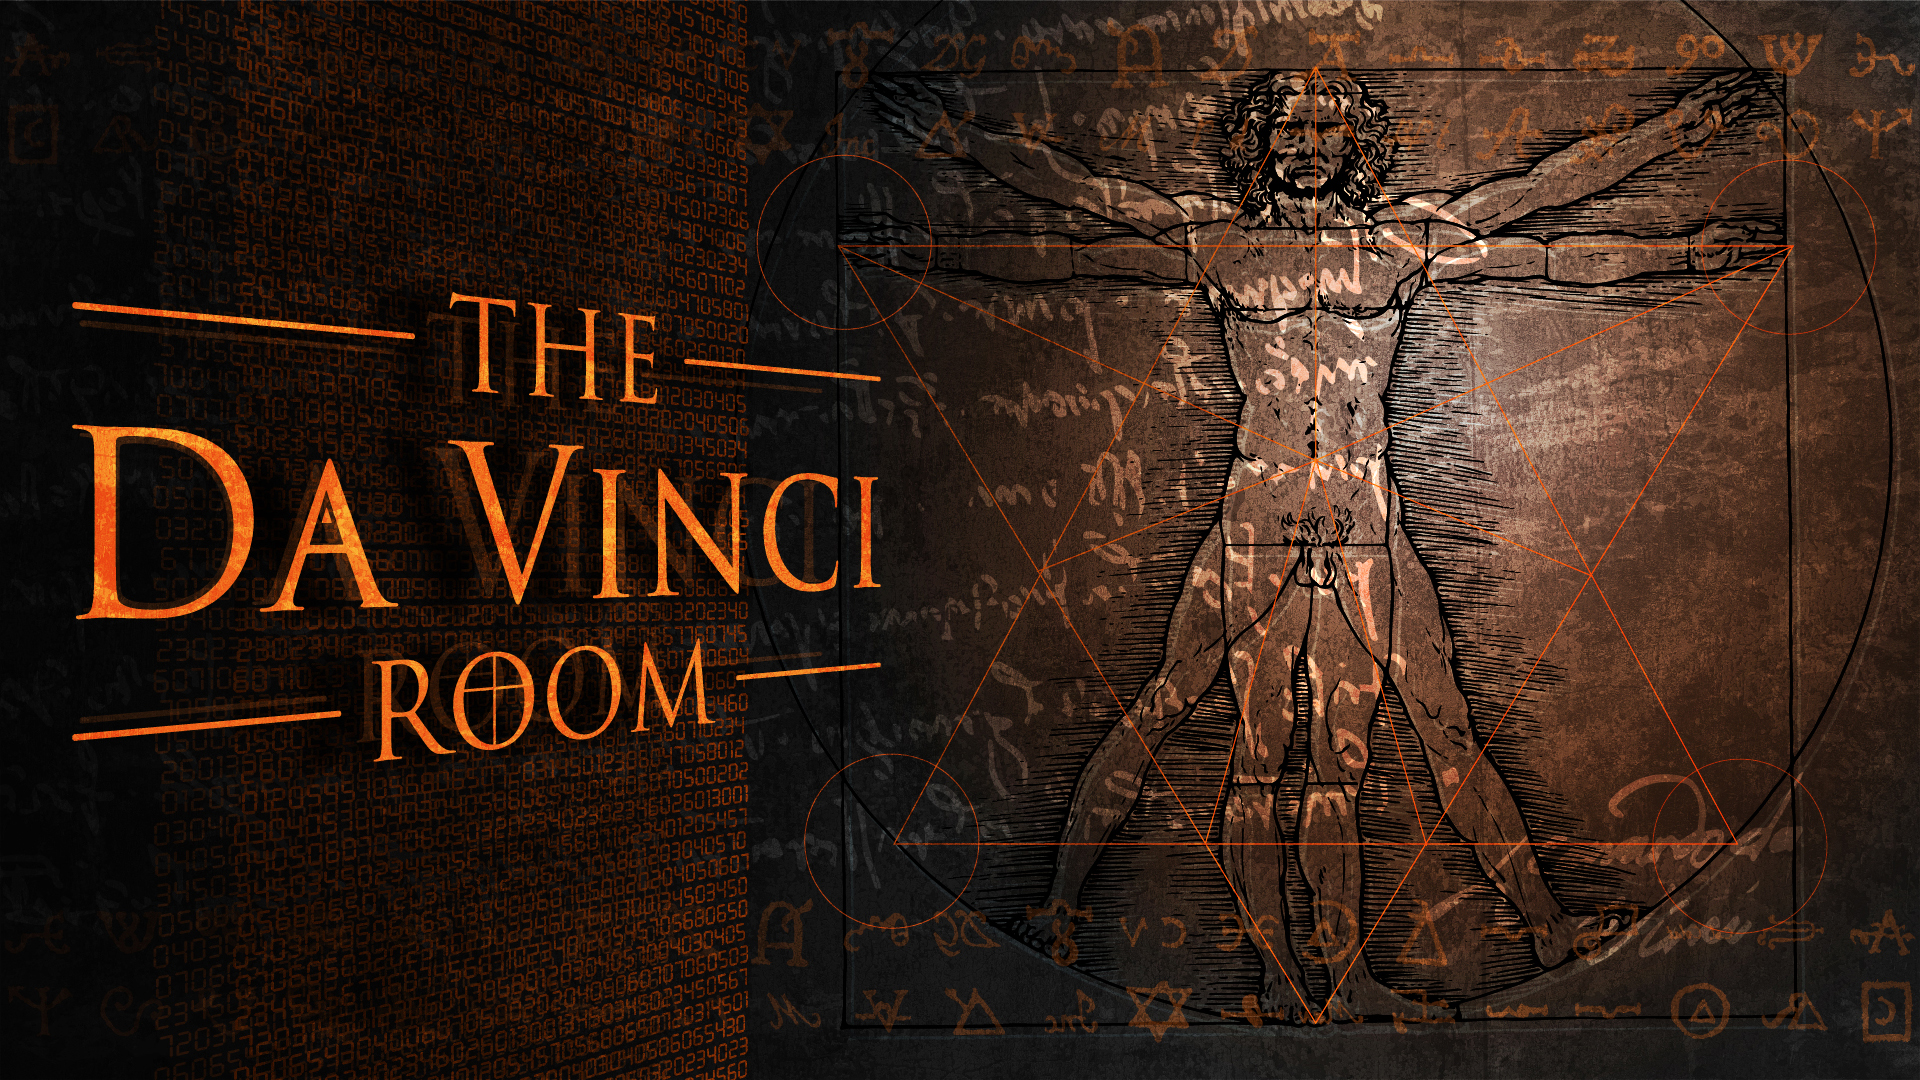 the da vinci room - Our Da Vinci Room will see you take on the role of thief, but for the greater good. Dr John Albright has studied the workings of Da Vinci in great detail. He has amassed a considerable collection over the years, including what many believe to be the Holy Grail. Having gained his trust by helping him